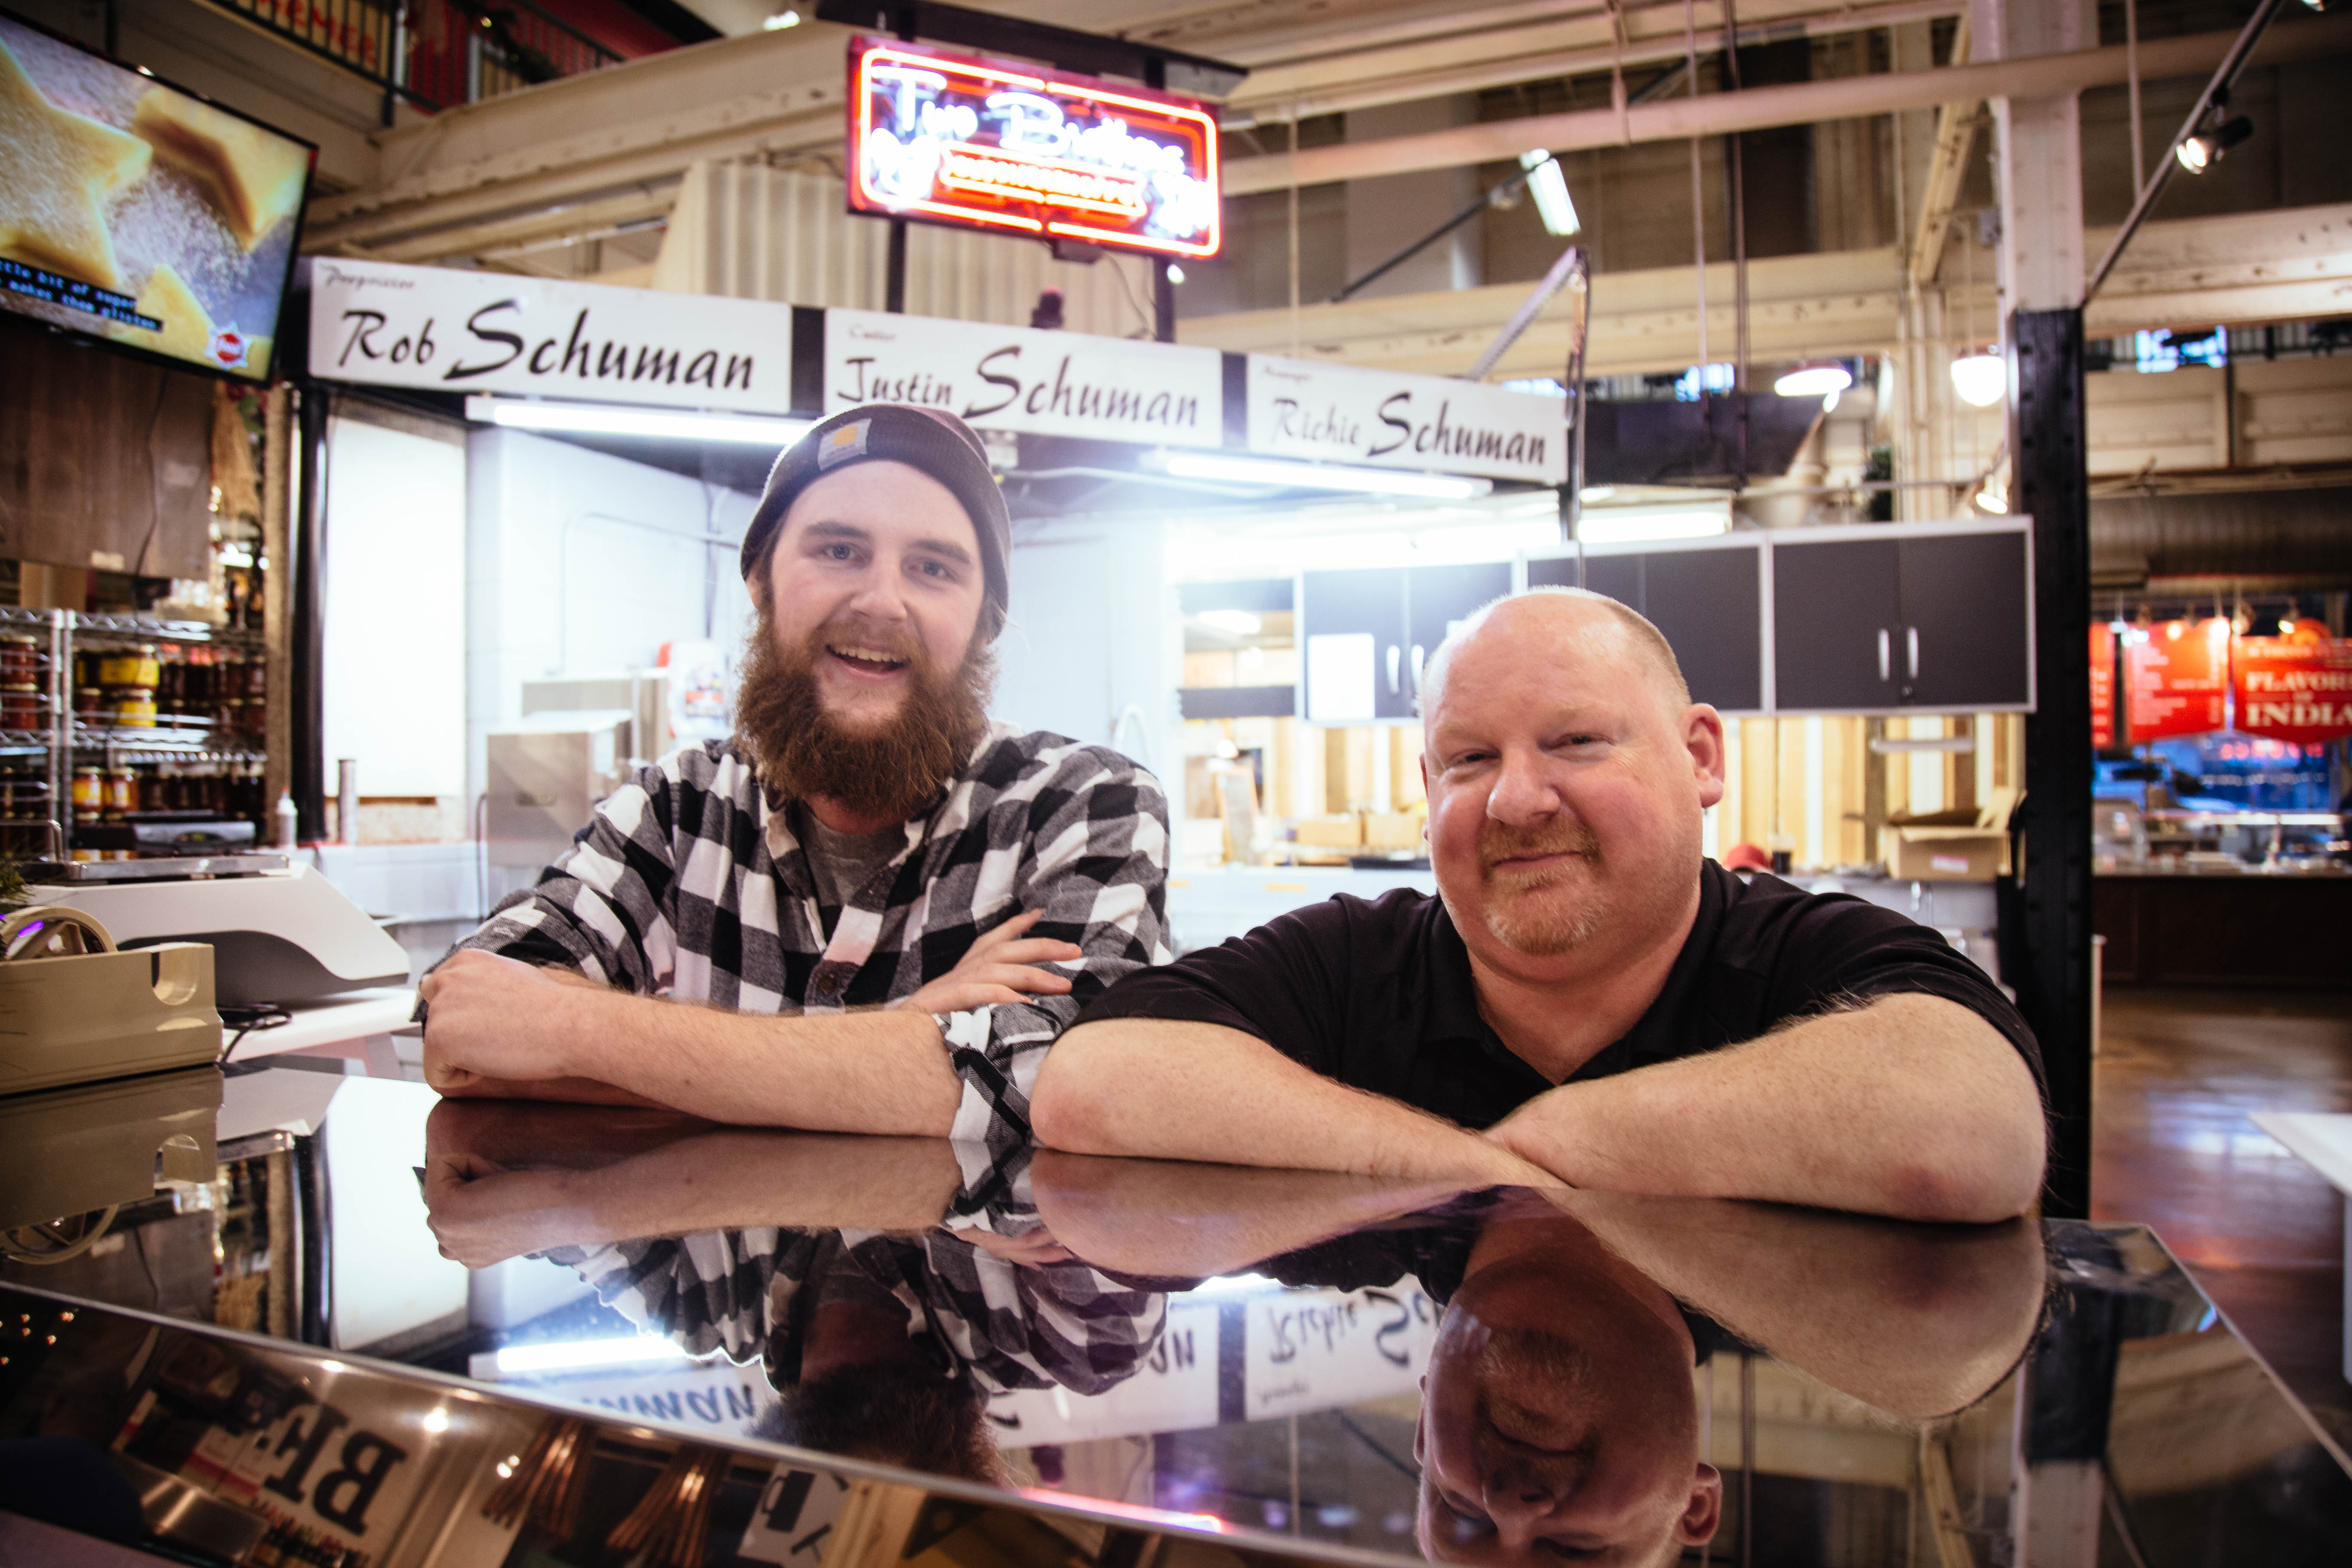 The Men Behind The Counters, Father & Son Duo Rob & Justin Schuman